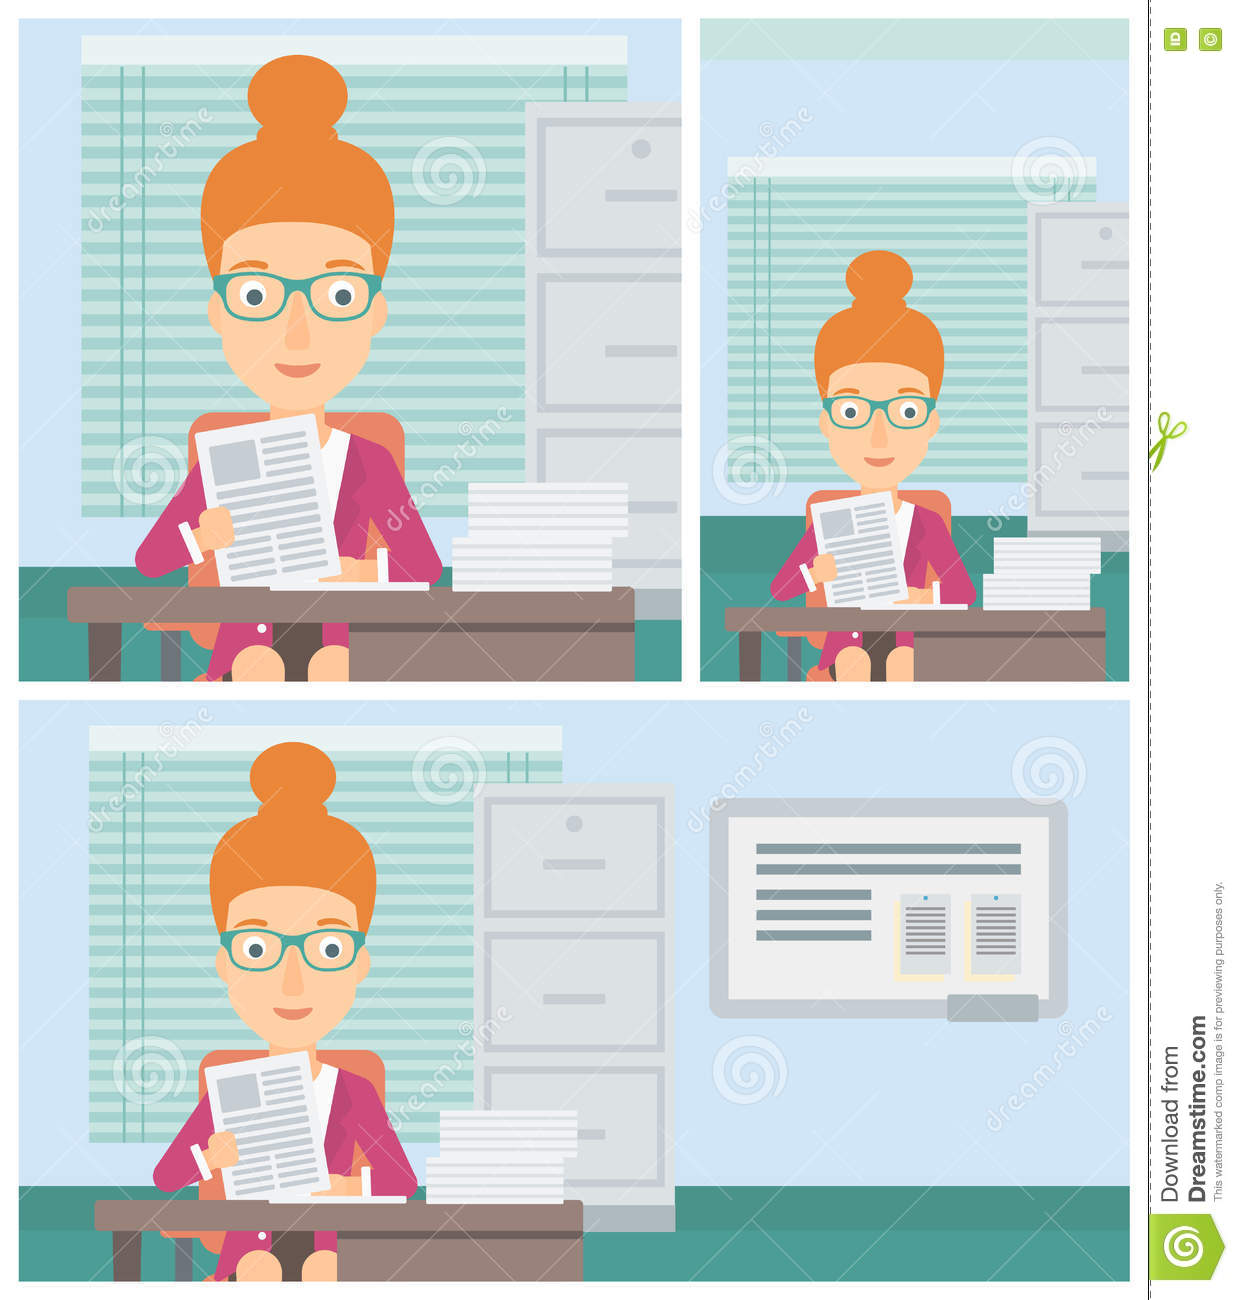 hr manager checking files vector illustration stock vector hr manager checking files vector illustration stock image